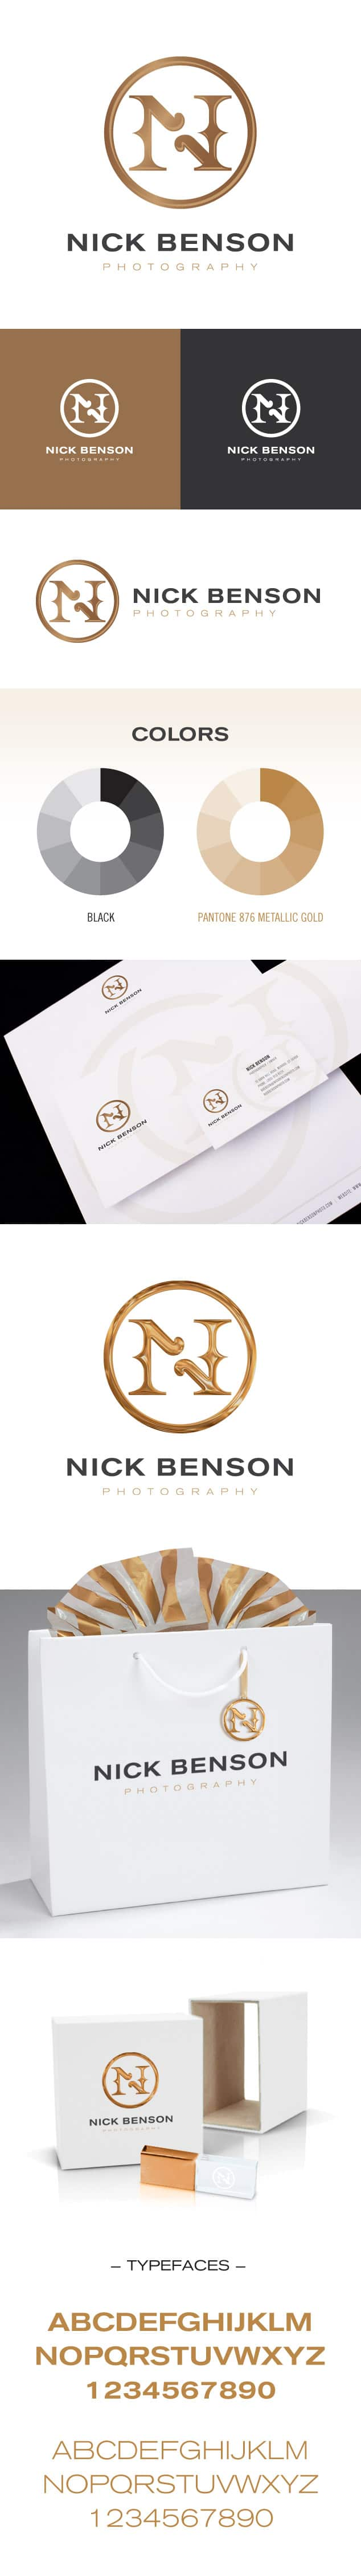 Nick Benson Photography Branding Package